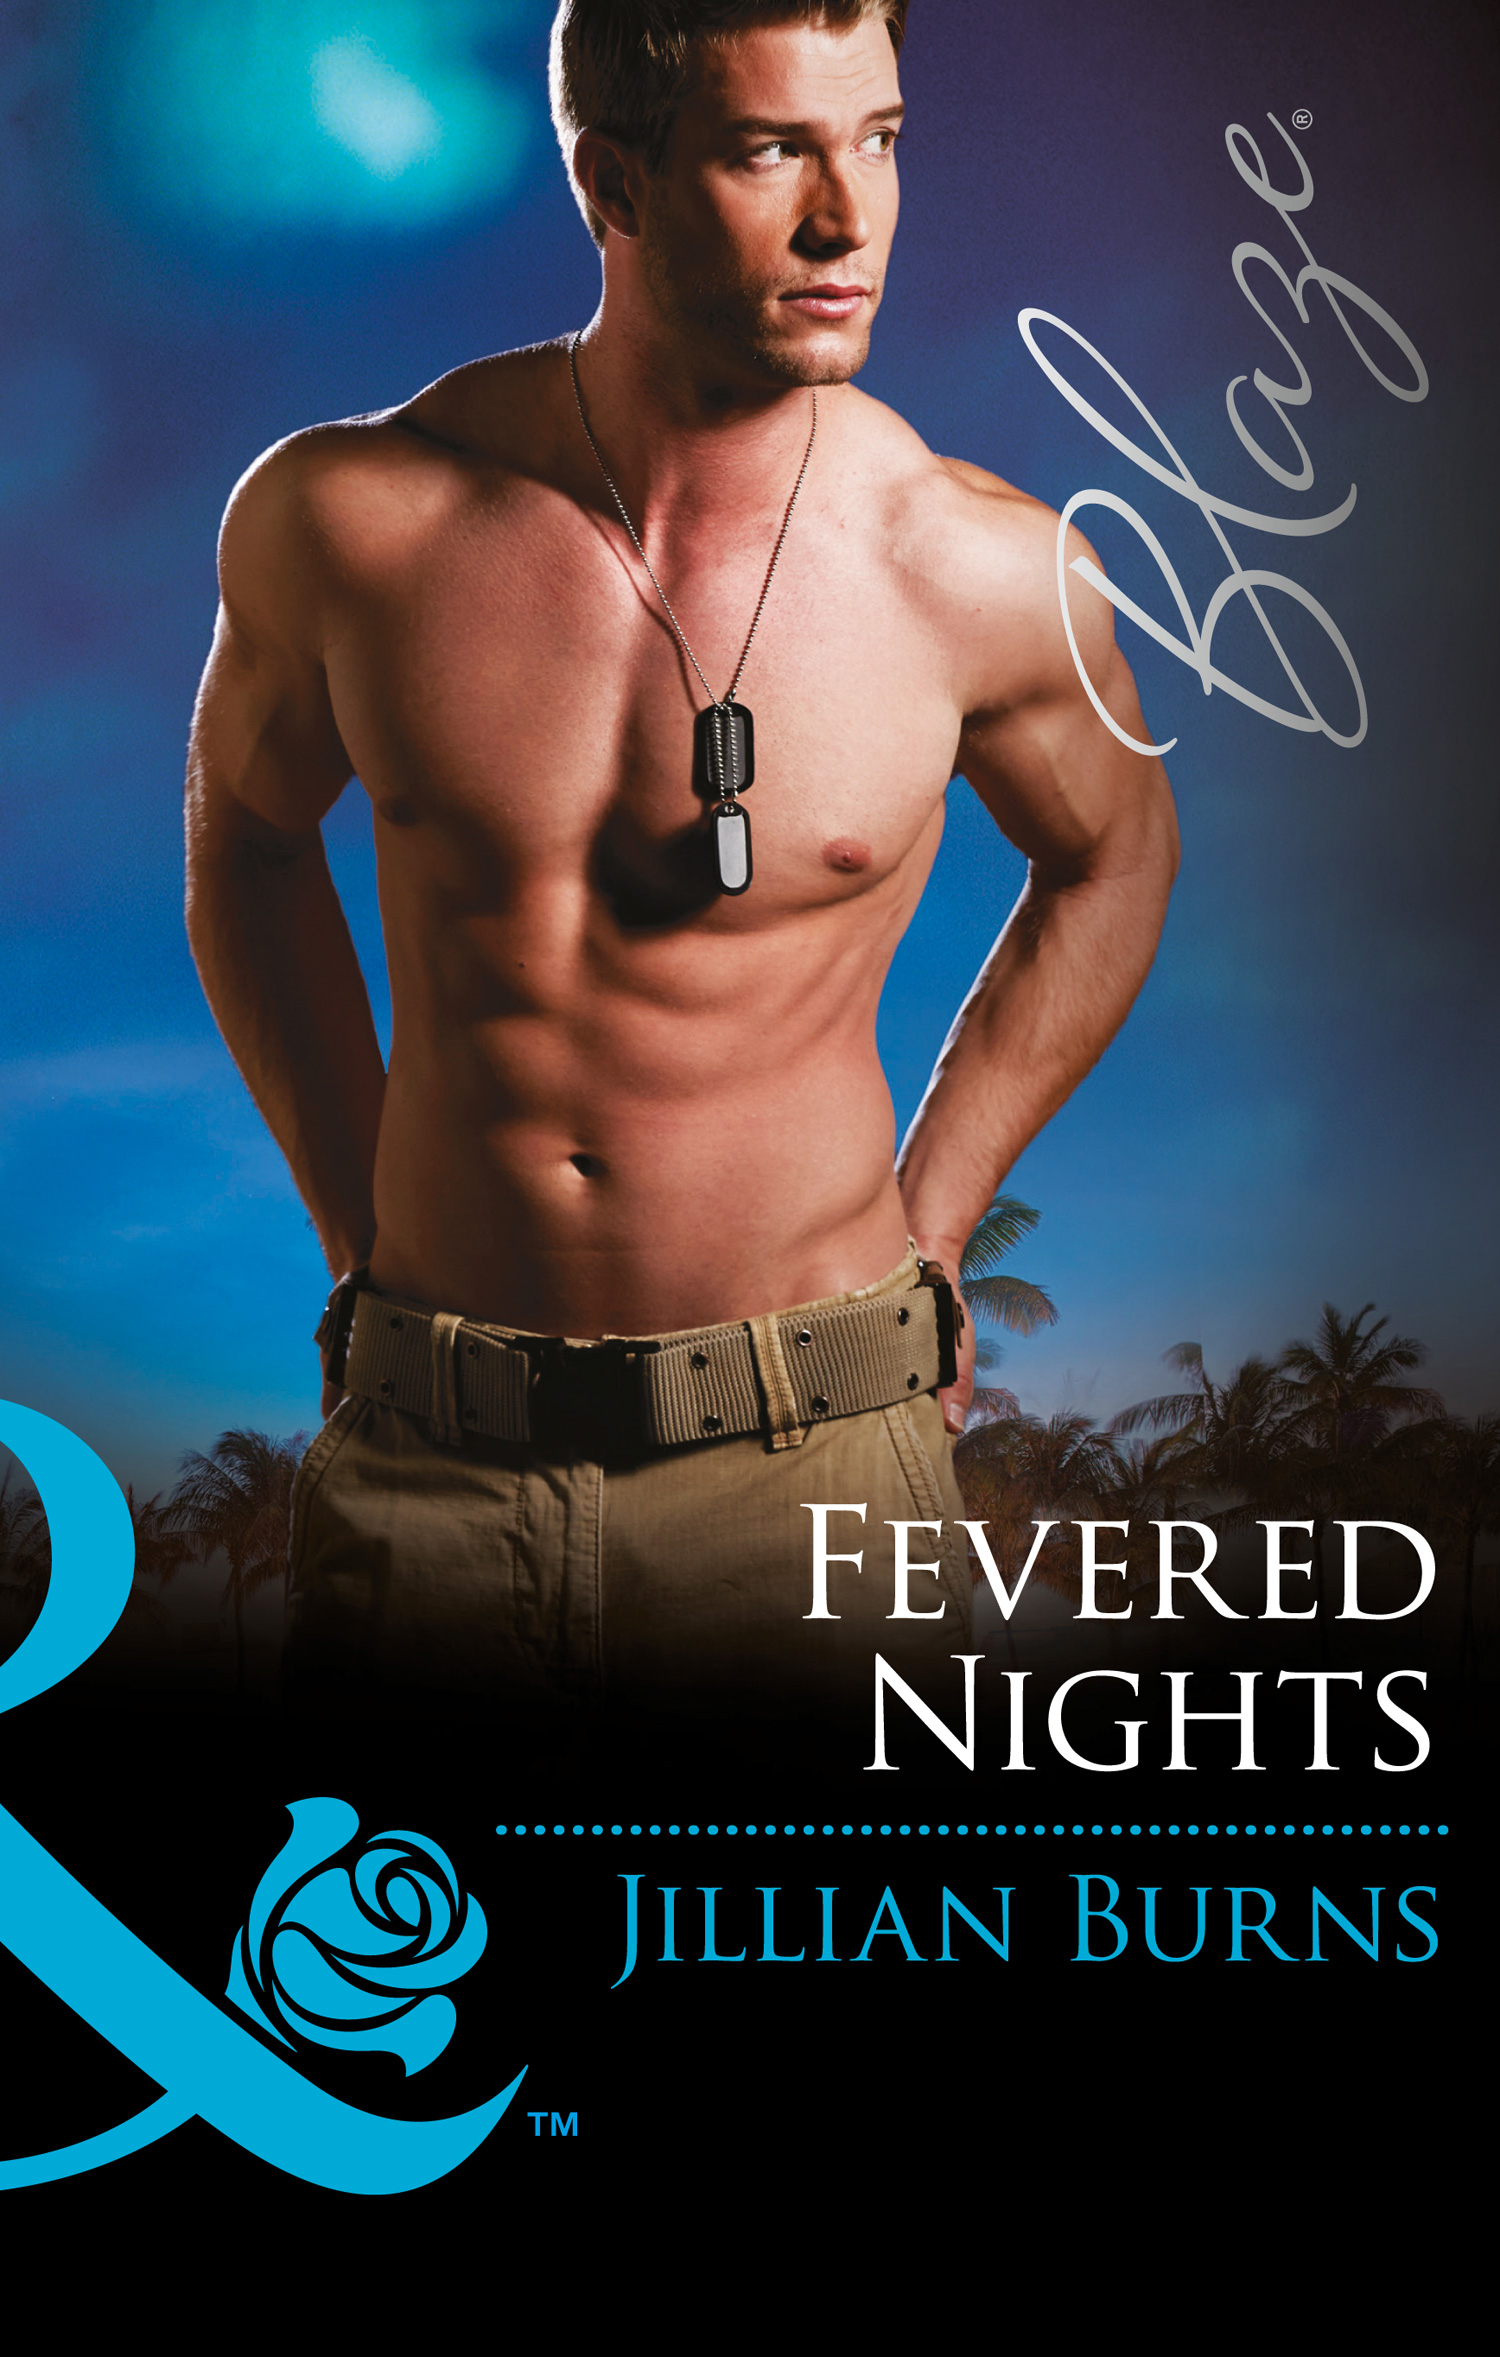 Fevered Nights